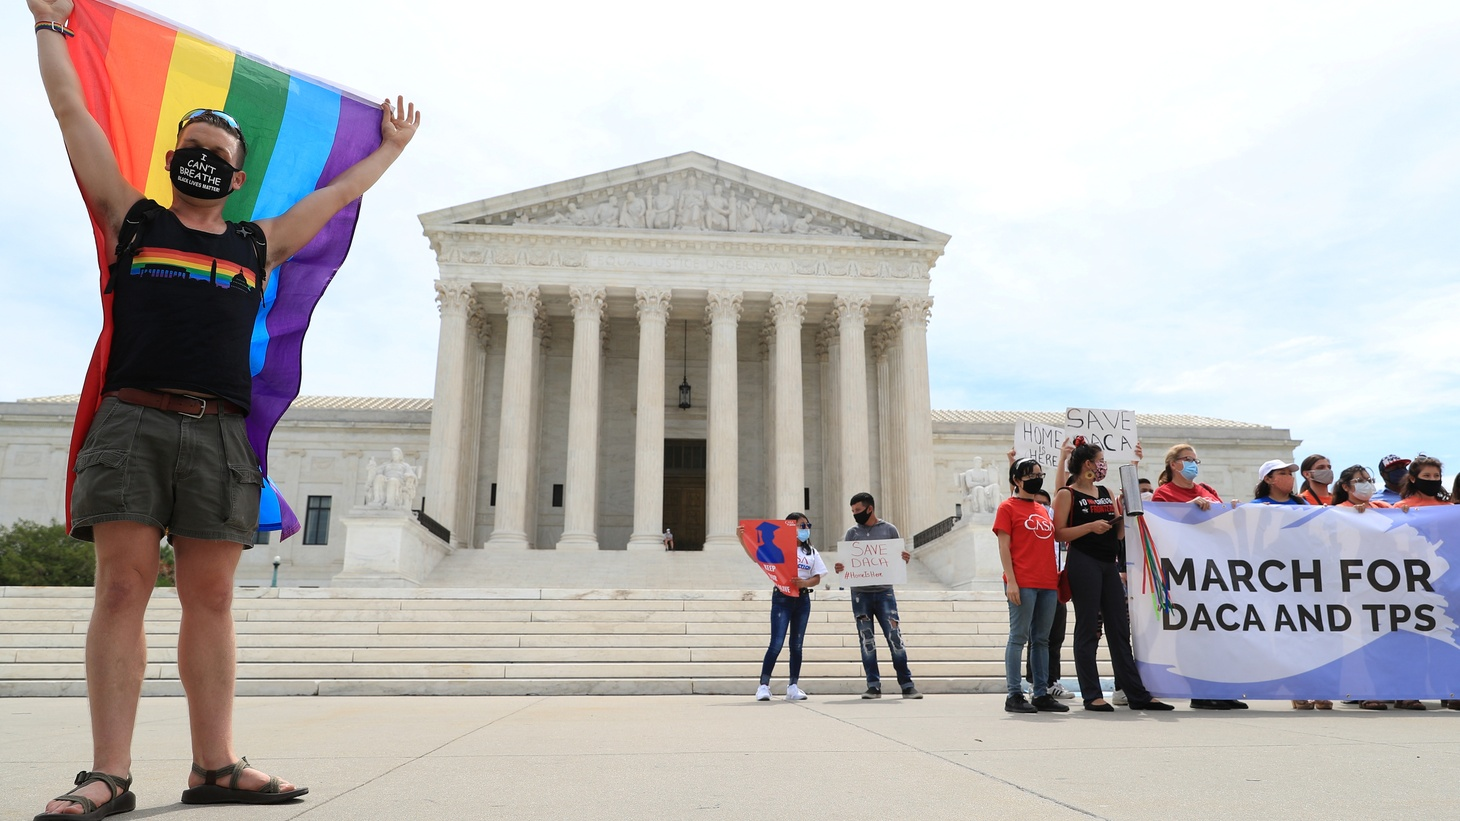 Joseph Fons holds a Pride flag beside DACA activists outside of the U.S. Supreme Court in Washington, U.S., June 15, 2020.